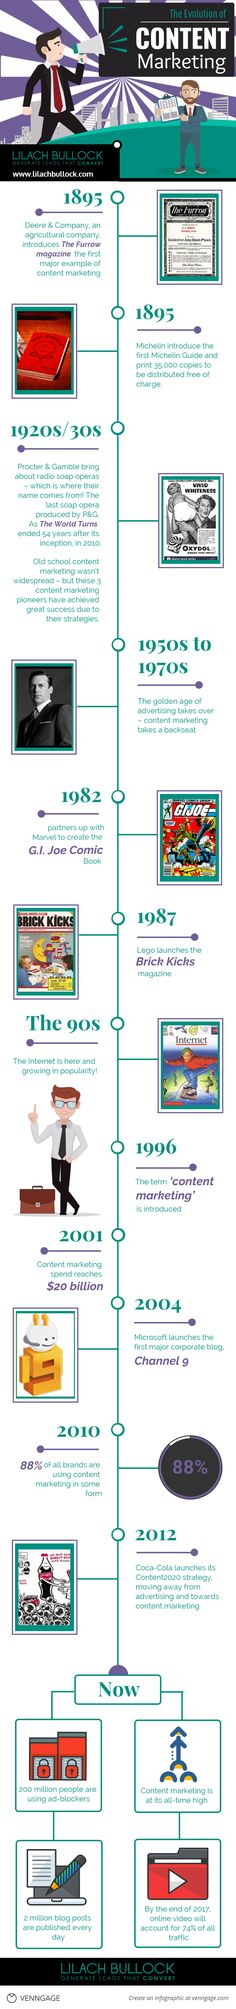 The history and evolution of content marketing [Infographic]